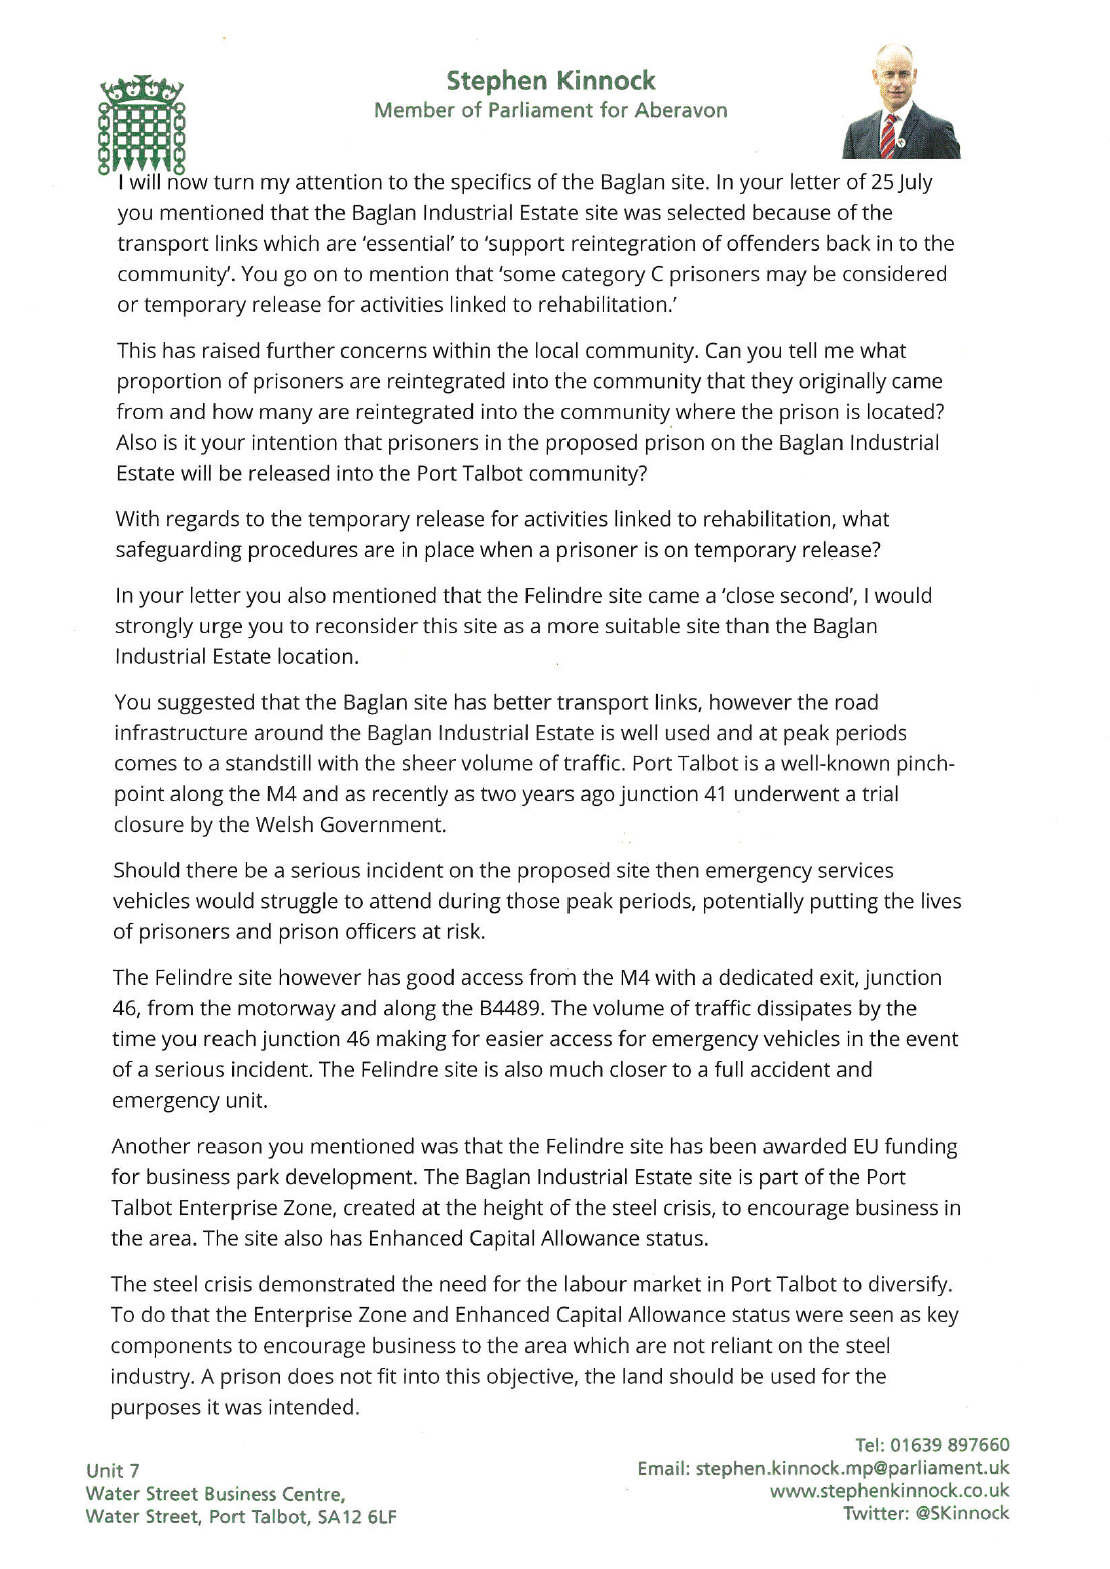 Letter_to_Sam_Gyimah_08092017_002.png